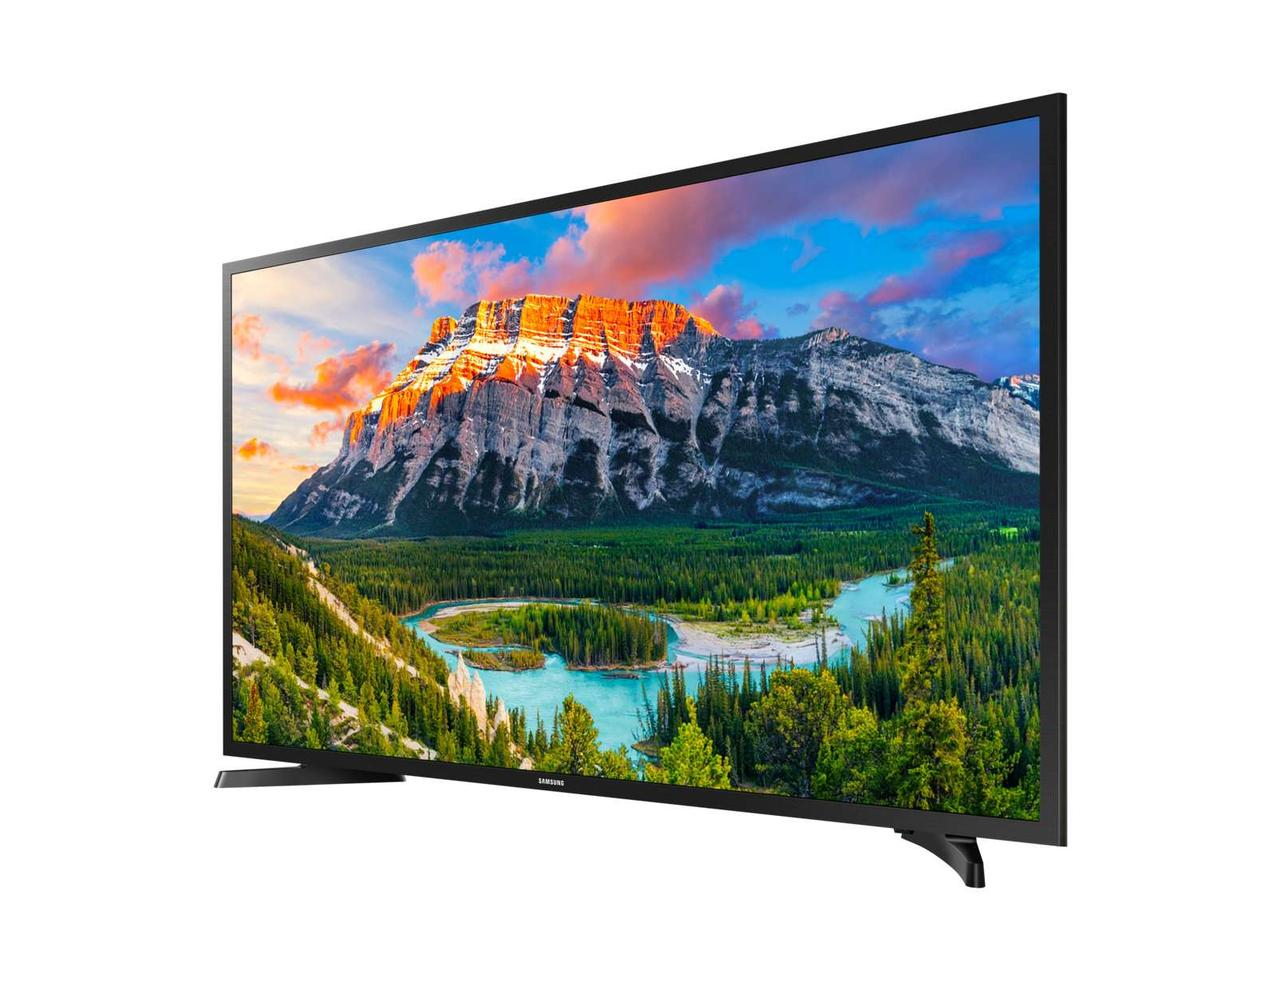 Телевизор Samsung 32' , FULL HD, SMART, WI-FI, T2/S2